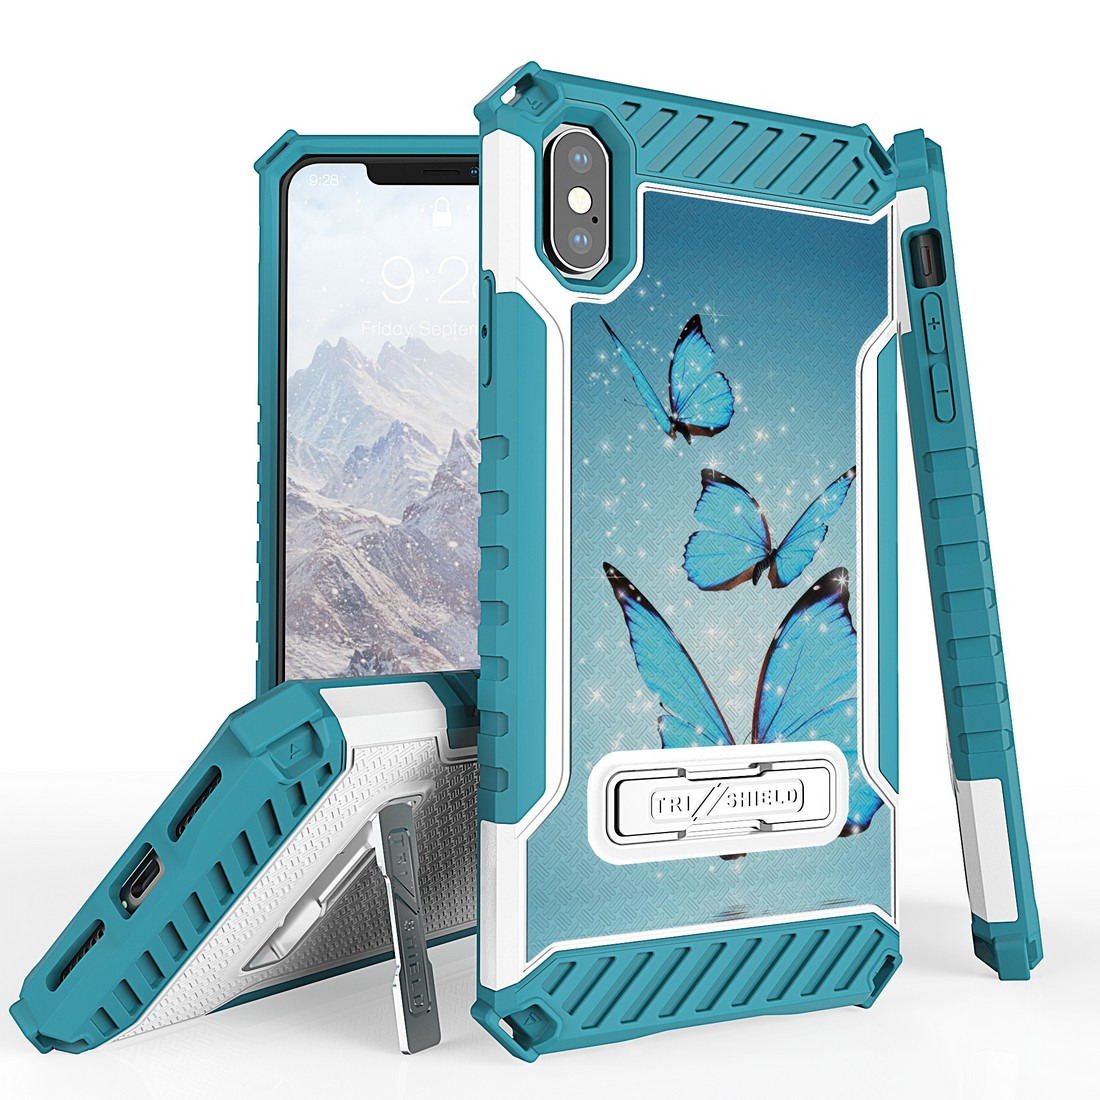 Beyond Cell Tri Shield Military Grade Shock Proof [MIL-STD 810G-516.6] Kickstand Case Cover for iPhone Xs Max - Blue Butterfly